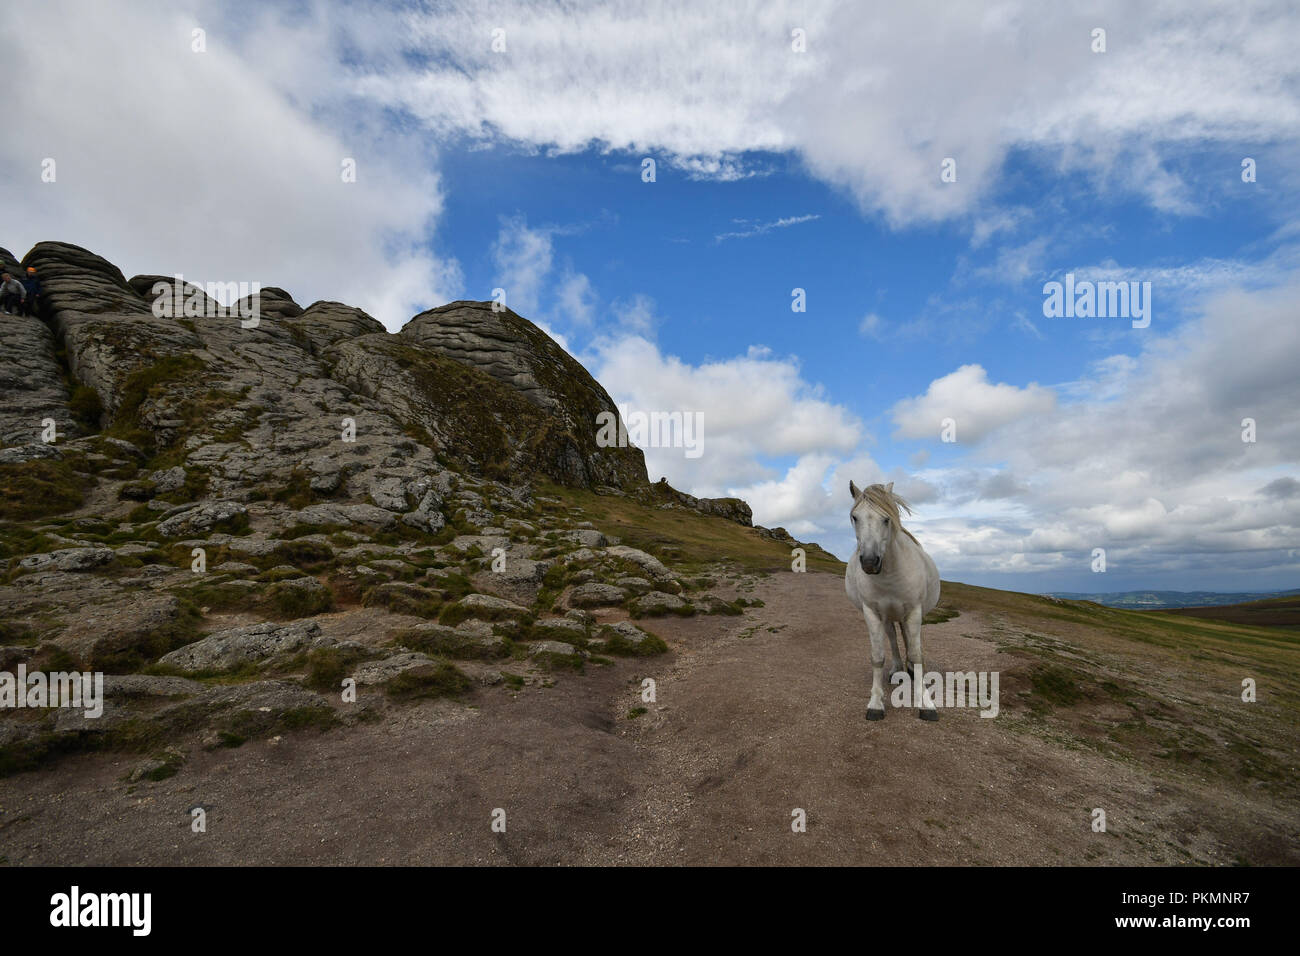 Haytor, Dartmoor, Devon, UK. 14th September 2018. UK Weather: This photogenic white Dartmoor pony was posing for visitors to a sunny Haytor this lunchtime. Credit: Simon Maycock/Alamy Live News - Stock Image